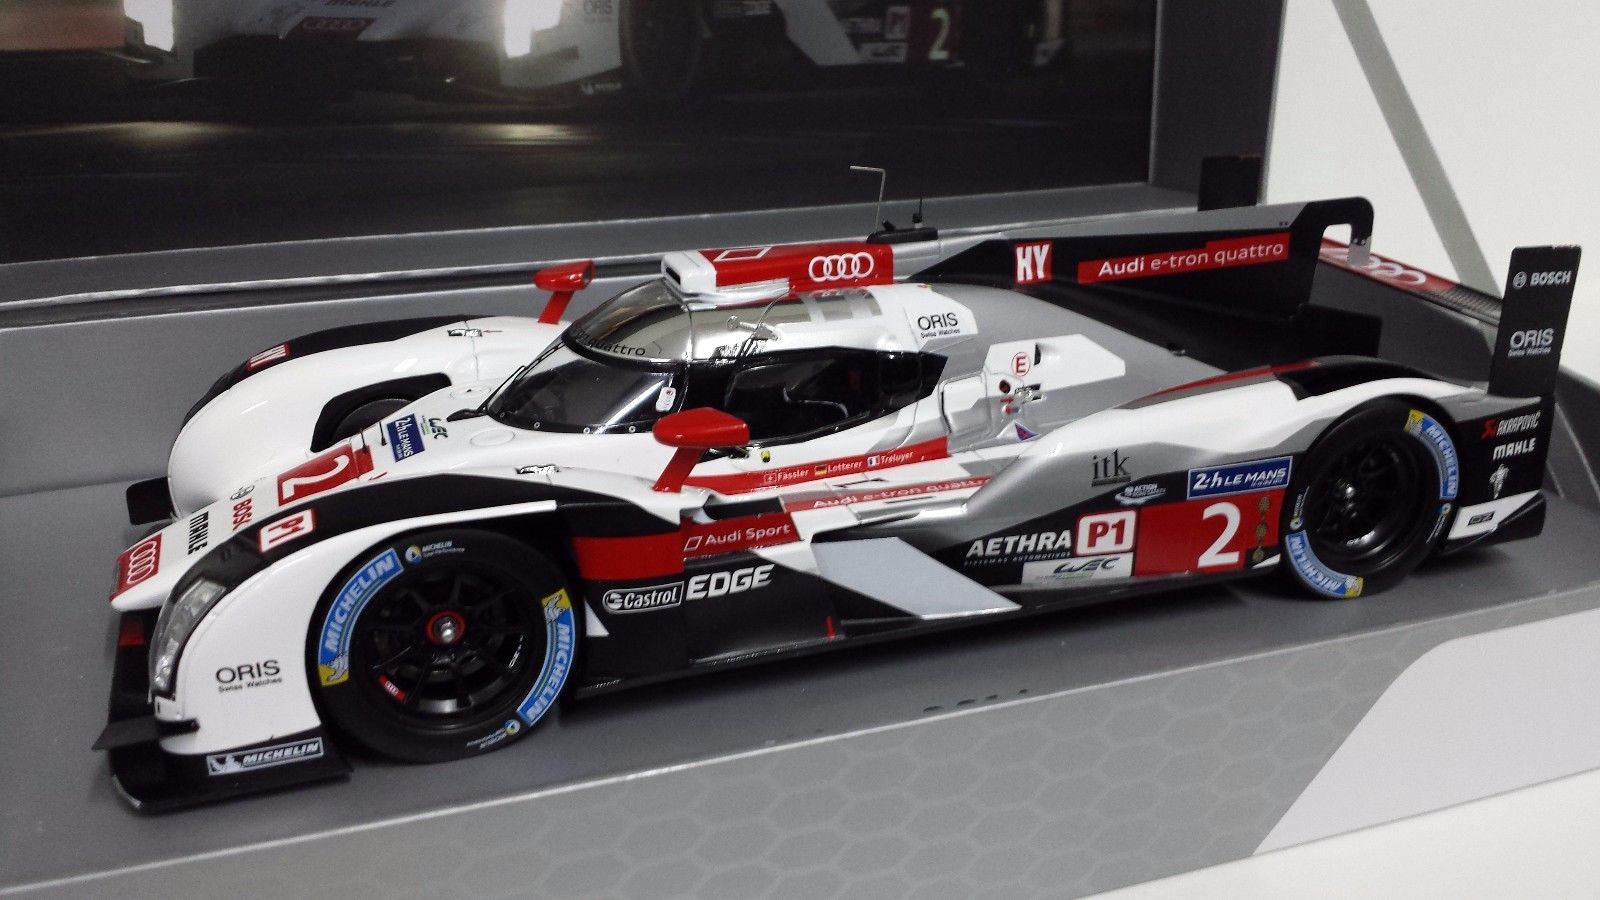 Cars SPARK AUDI R ETRON QUATTRO WINNER H LEMANS - Audi collection